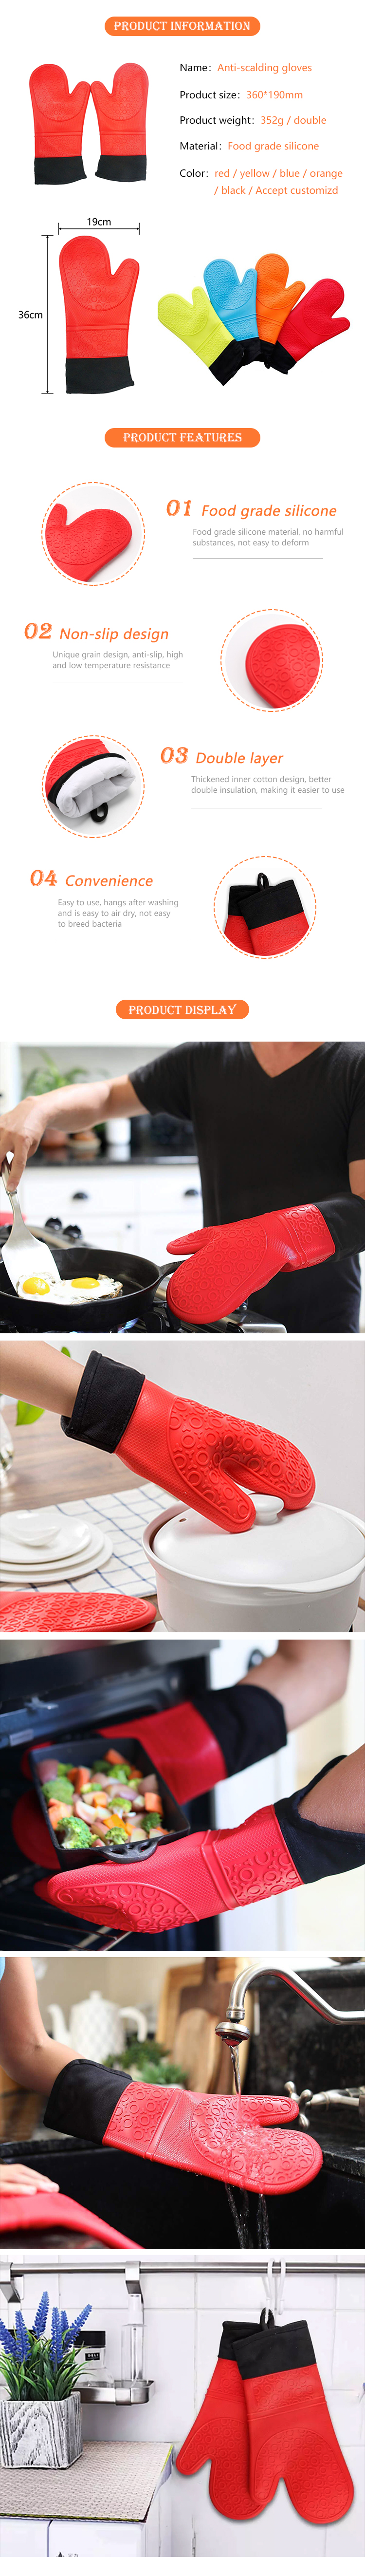 Heat Resistant 550 degree Professional Extra Long 1 Pair Silicone Cooking Oven Mitts